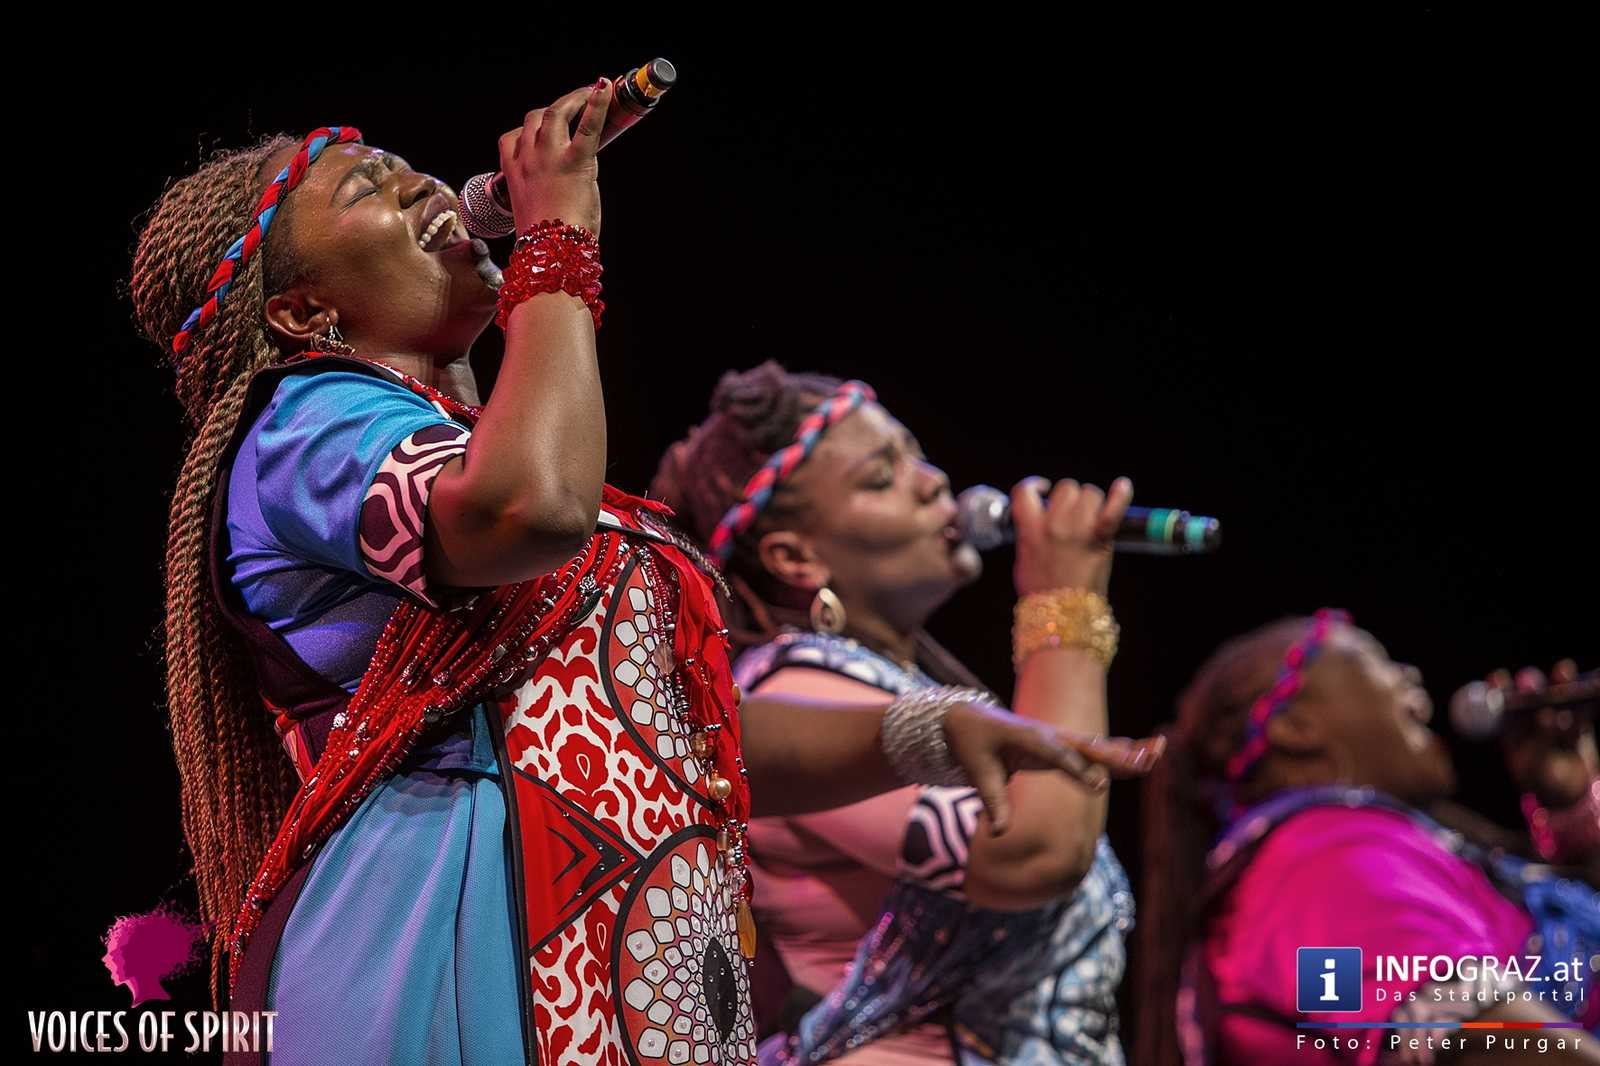 soweto gospel choir internationales chorfestival statdthalle graz voices of spirit eroeffnung festivals 2016 114